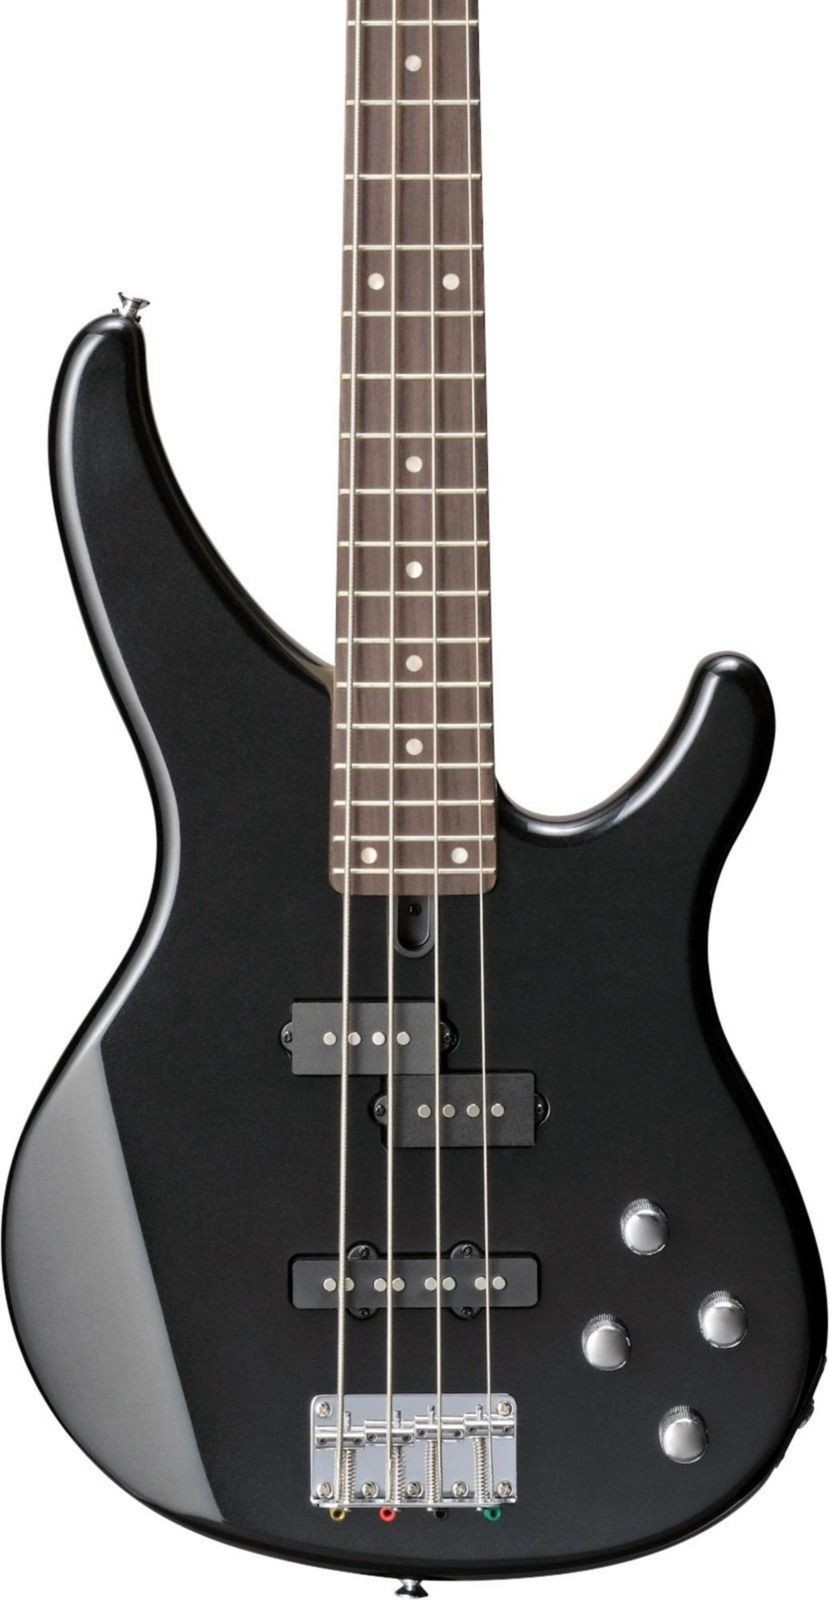 Picture 1 of 9. Yamaha Trbx204 Active Electric Bass Guitar Galaxy Black from rogue ...